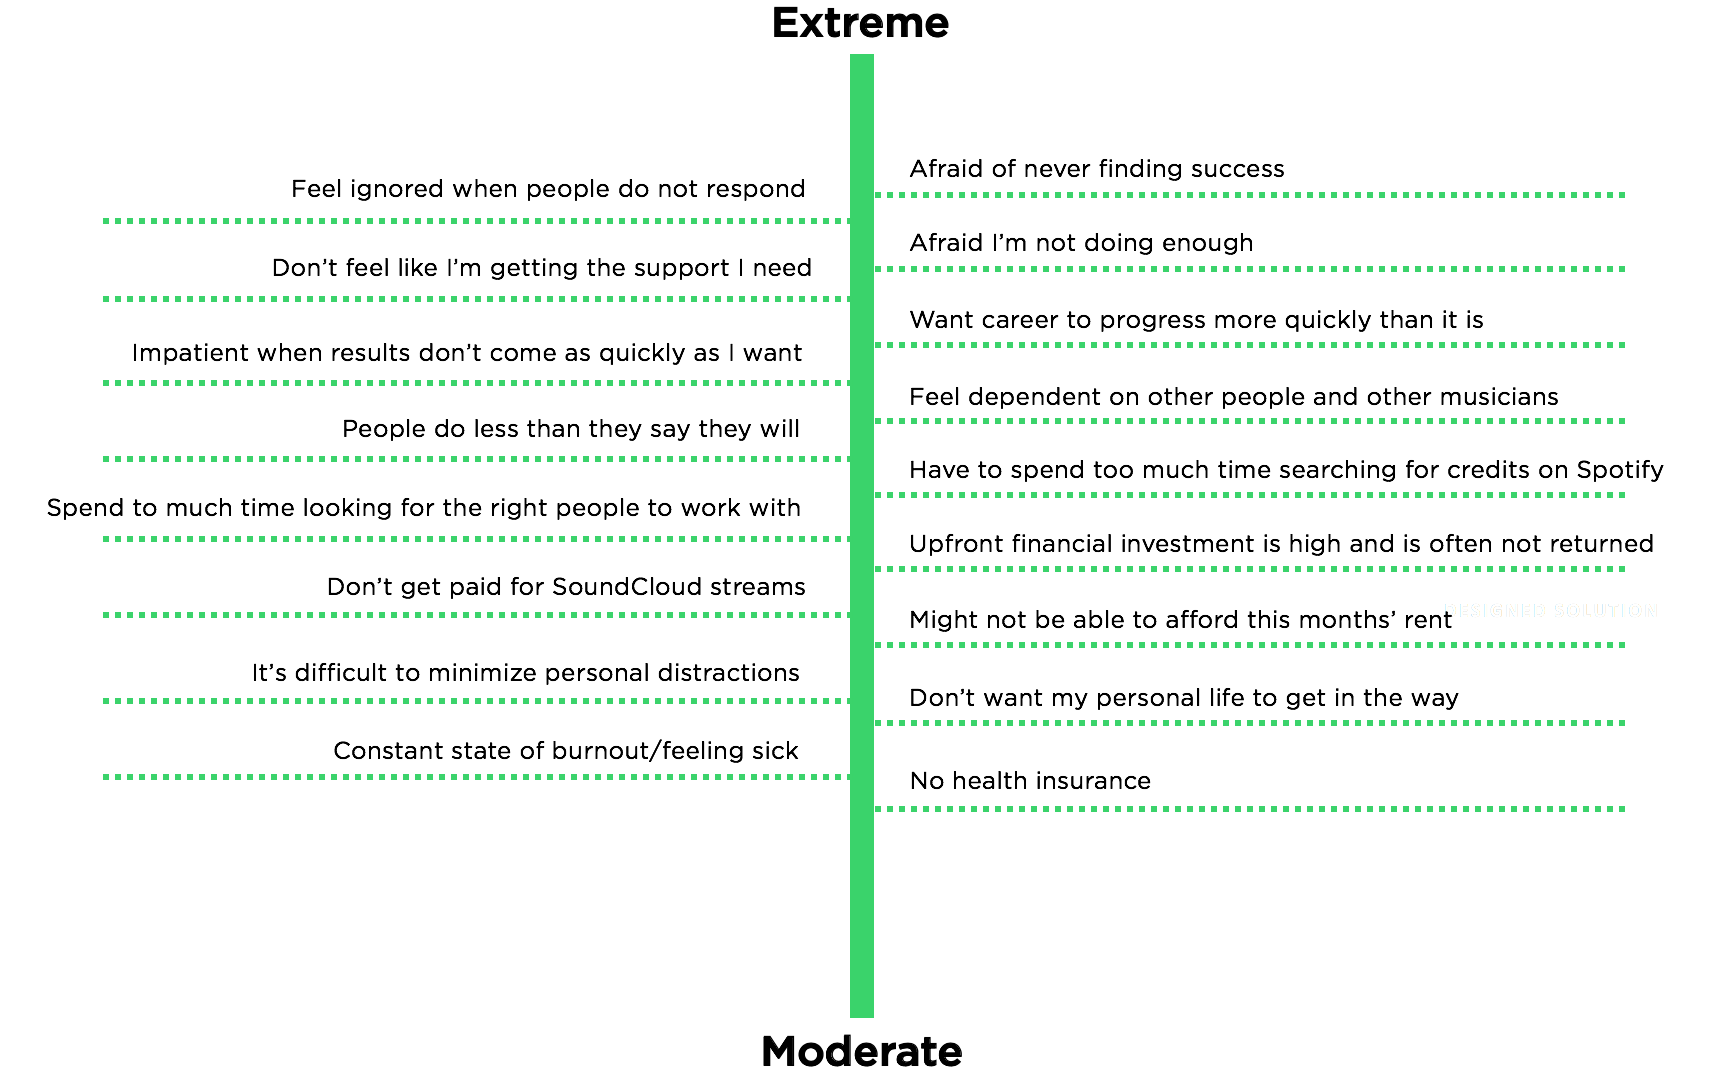 The User Pains ranked from moderate to extreme pain.